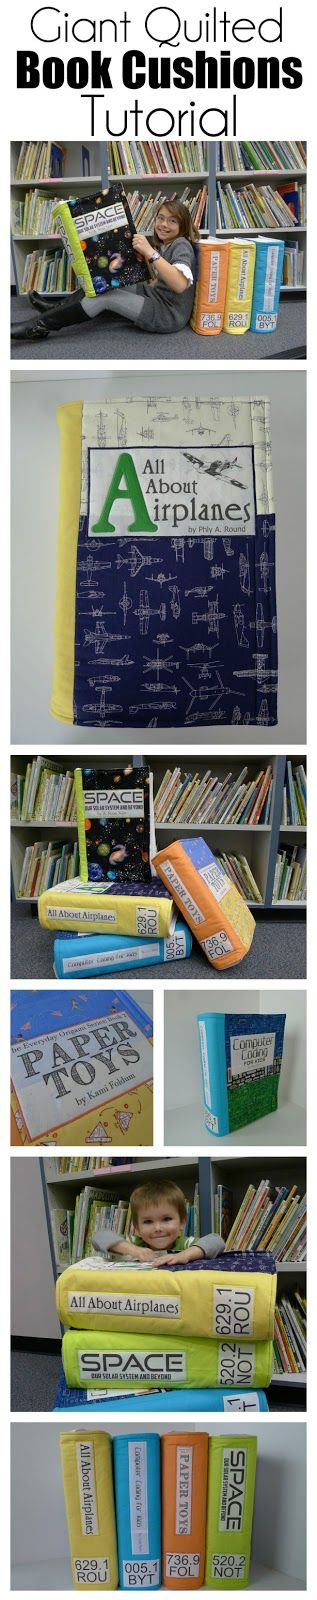 Giant Quilted Non-Fiction Book Cushion Tutorial - Perfect for a Reading Nook, Library, or Classroom  - Make your own!